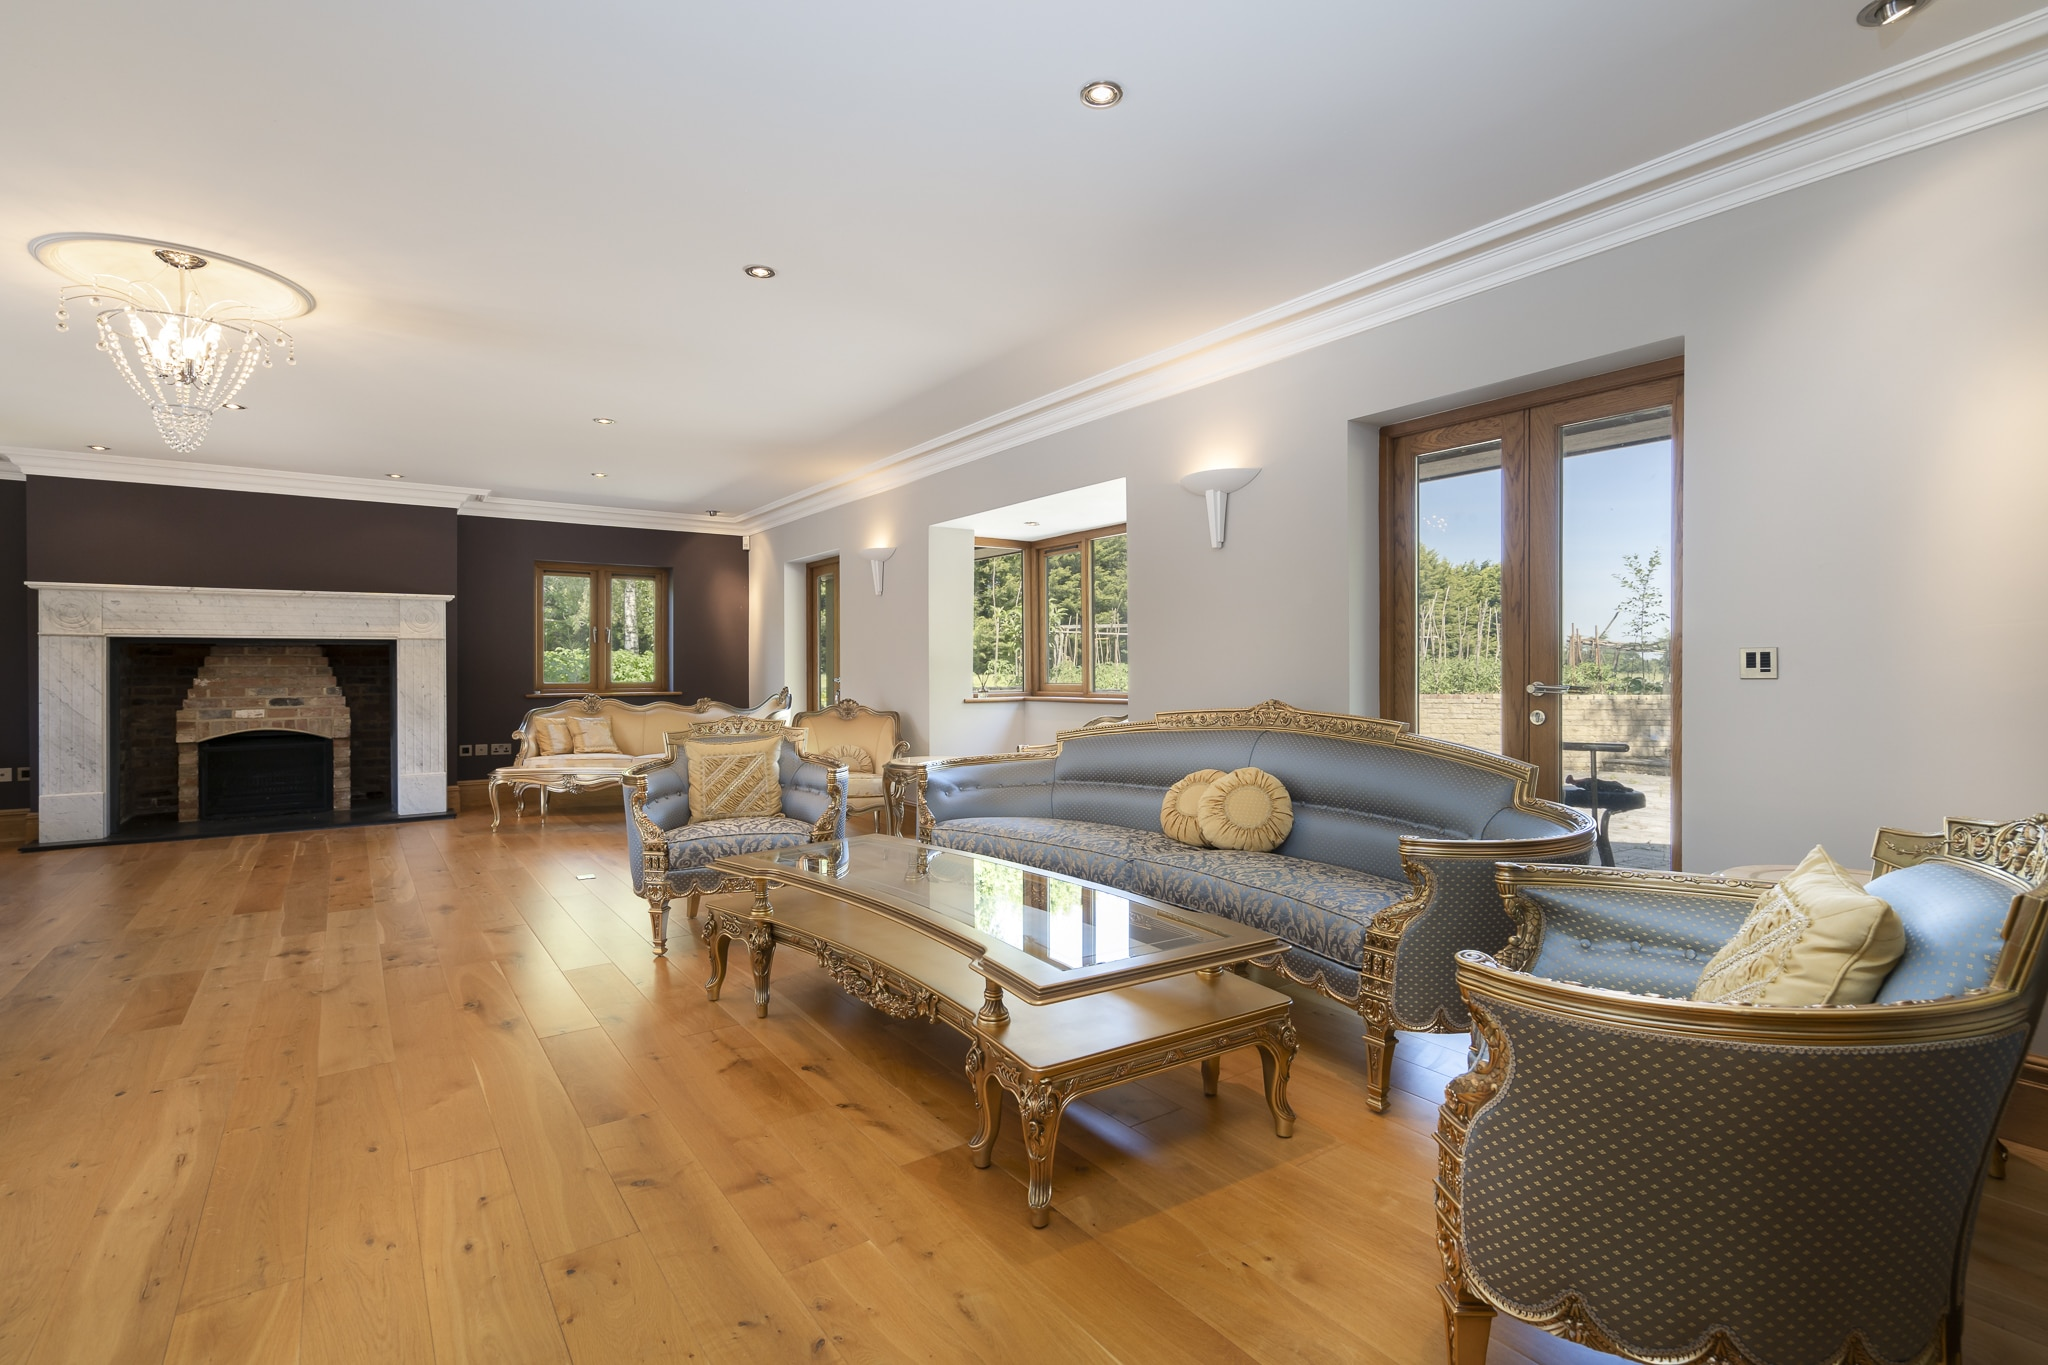 Nick Powell Photography - Commercial 360 & Still Photography - Sussex